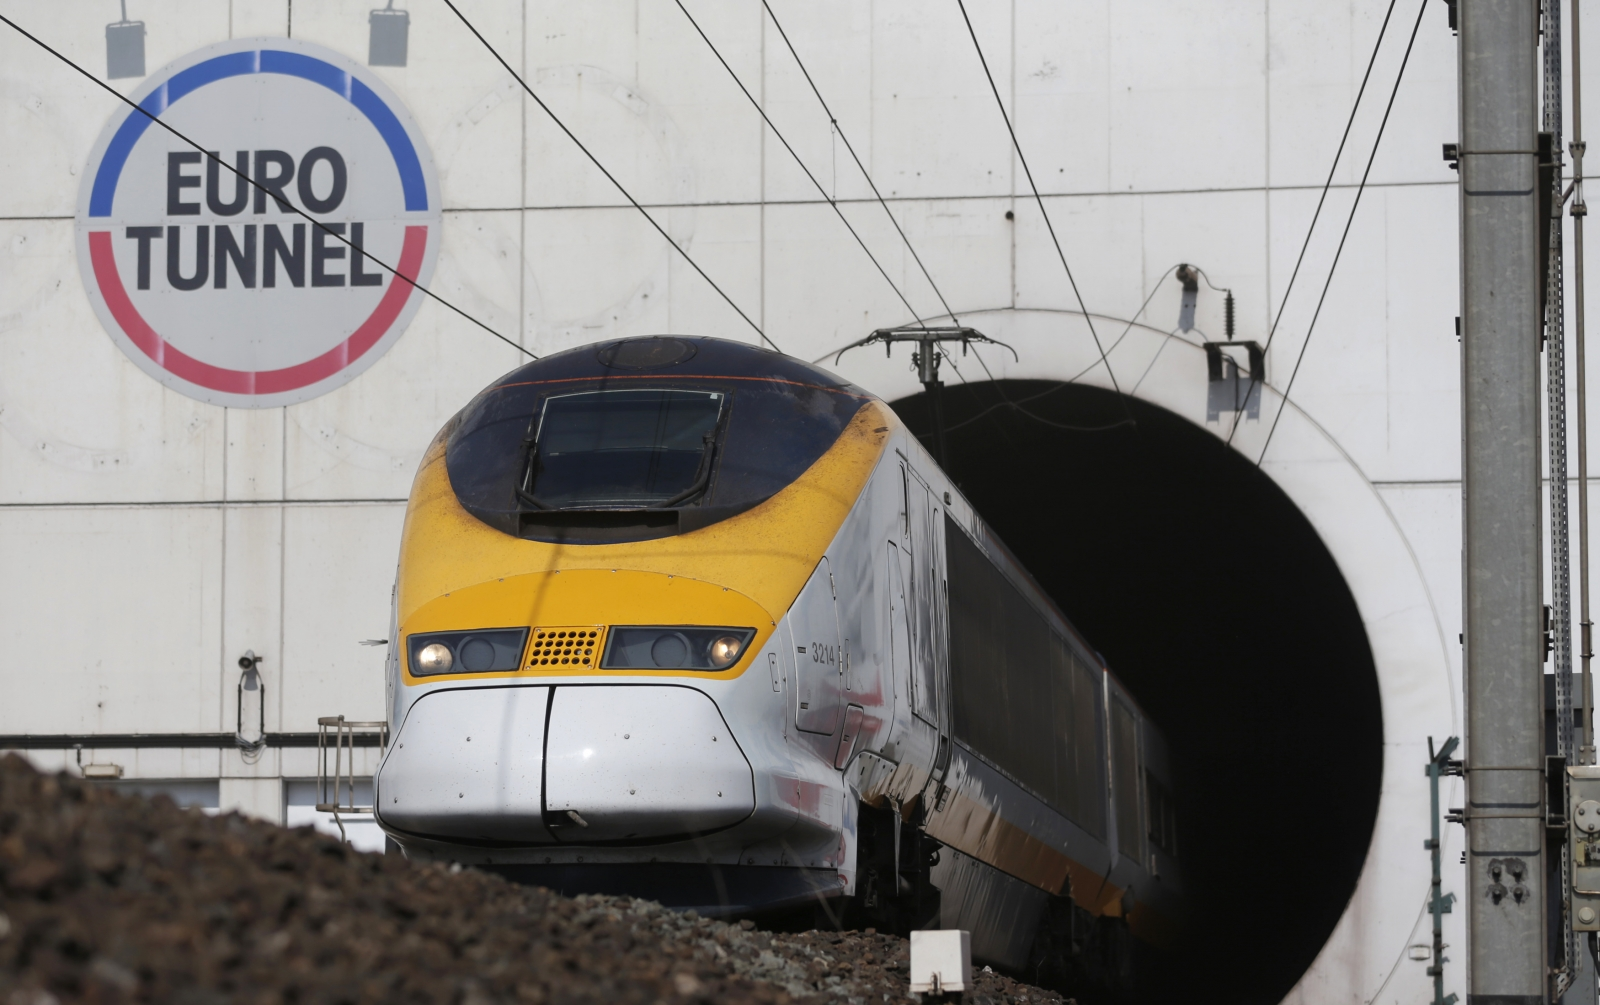 euro tunnel All the latest breaking news on channel tunnel browse the independent's  complete collection of articles and commentary on channel tunnel.